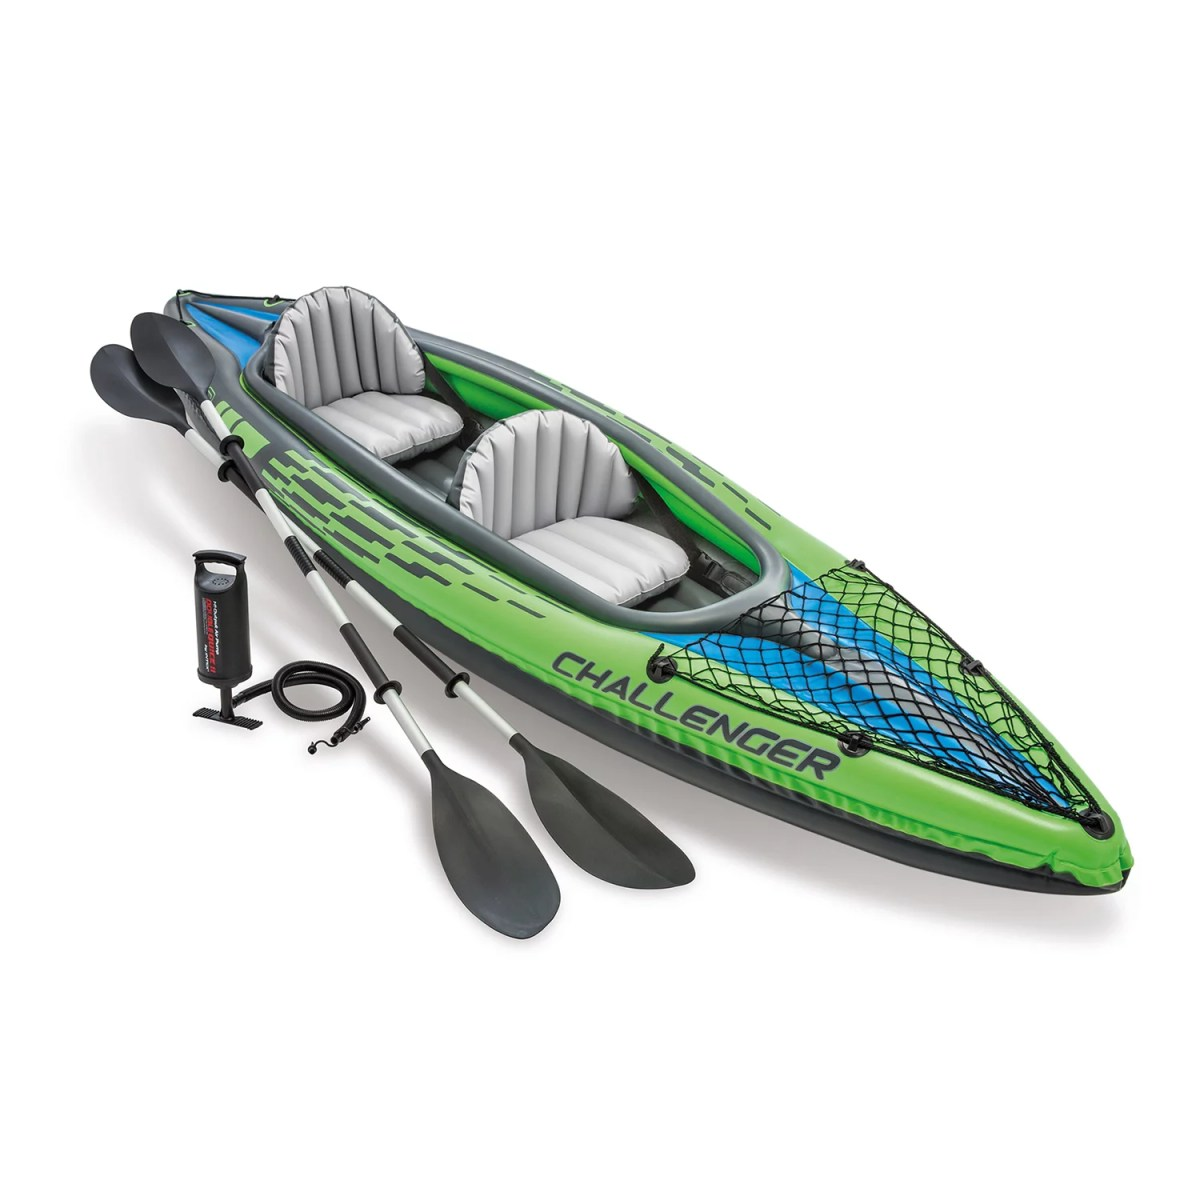 Intex Challenger K2 Inflatable Kayak with Oars and Hand Pump